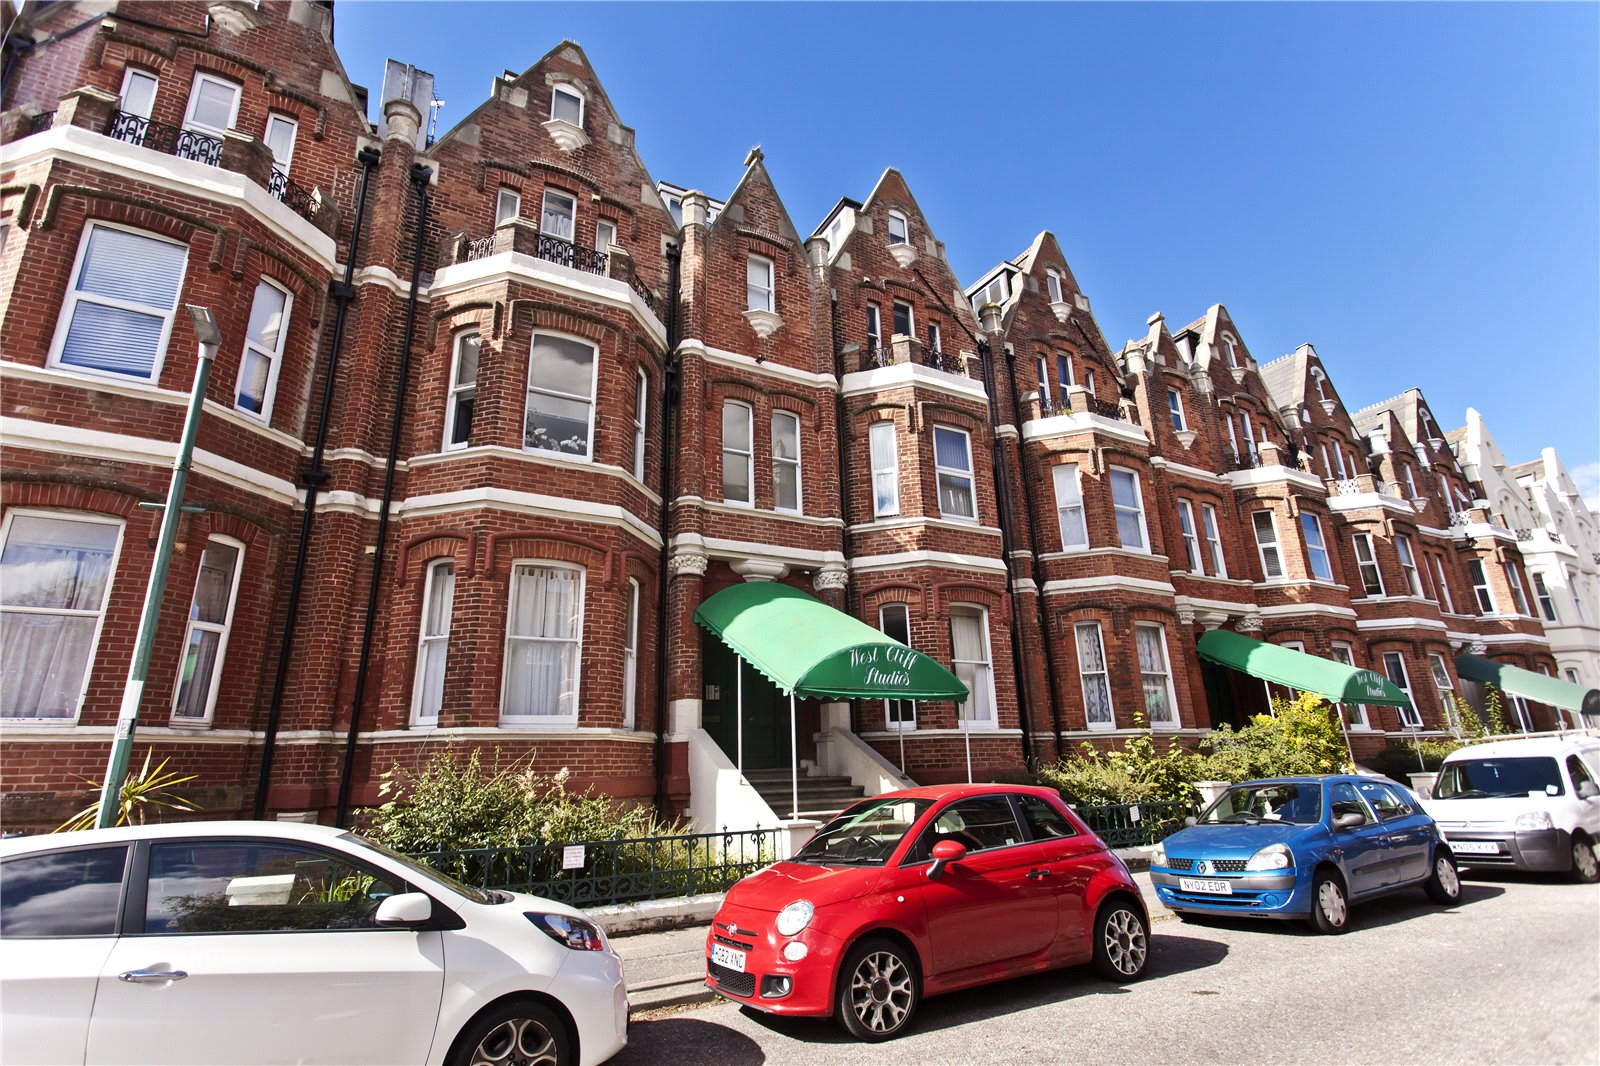 1 bed apartment for sale in West Cliff Studios, 7 Durley Gardens - Property Image 1